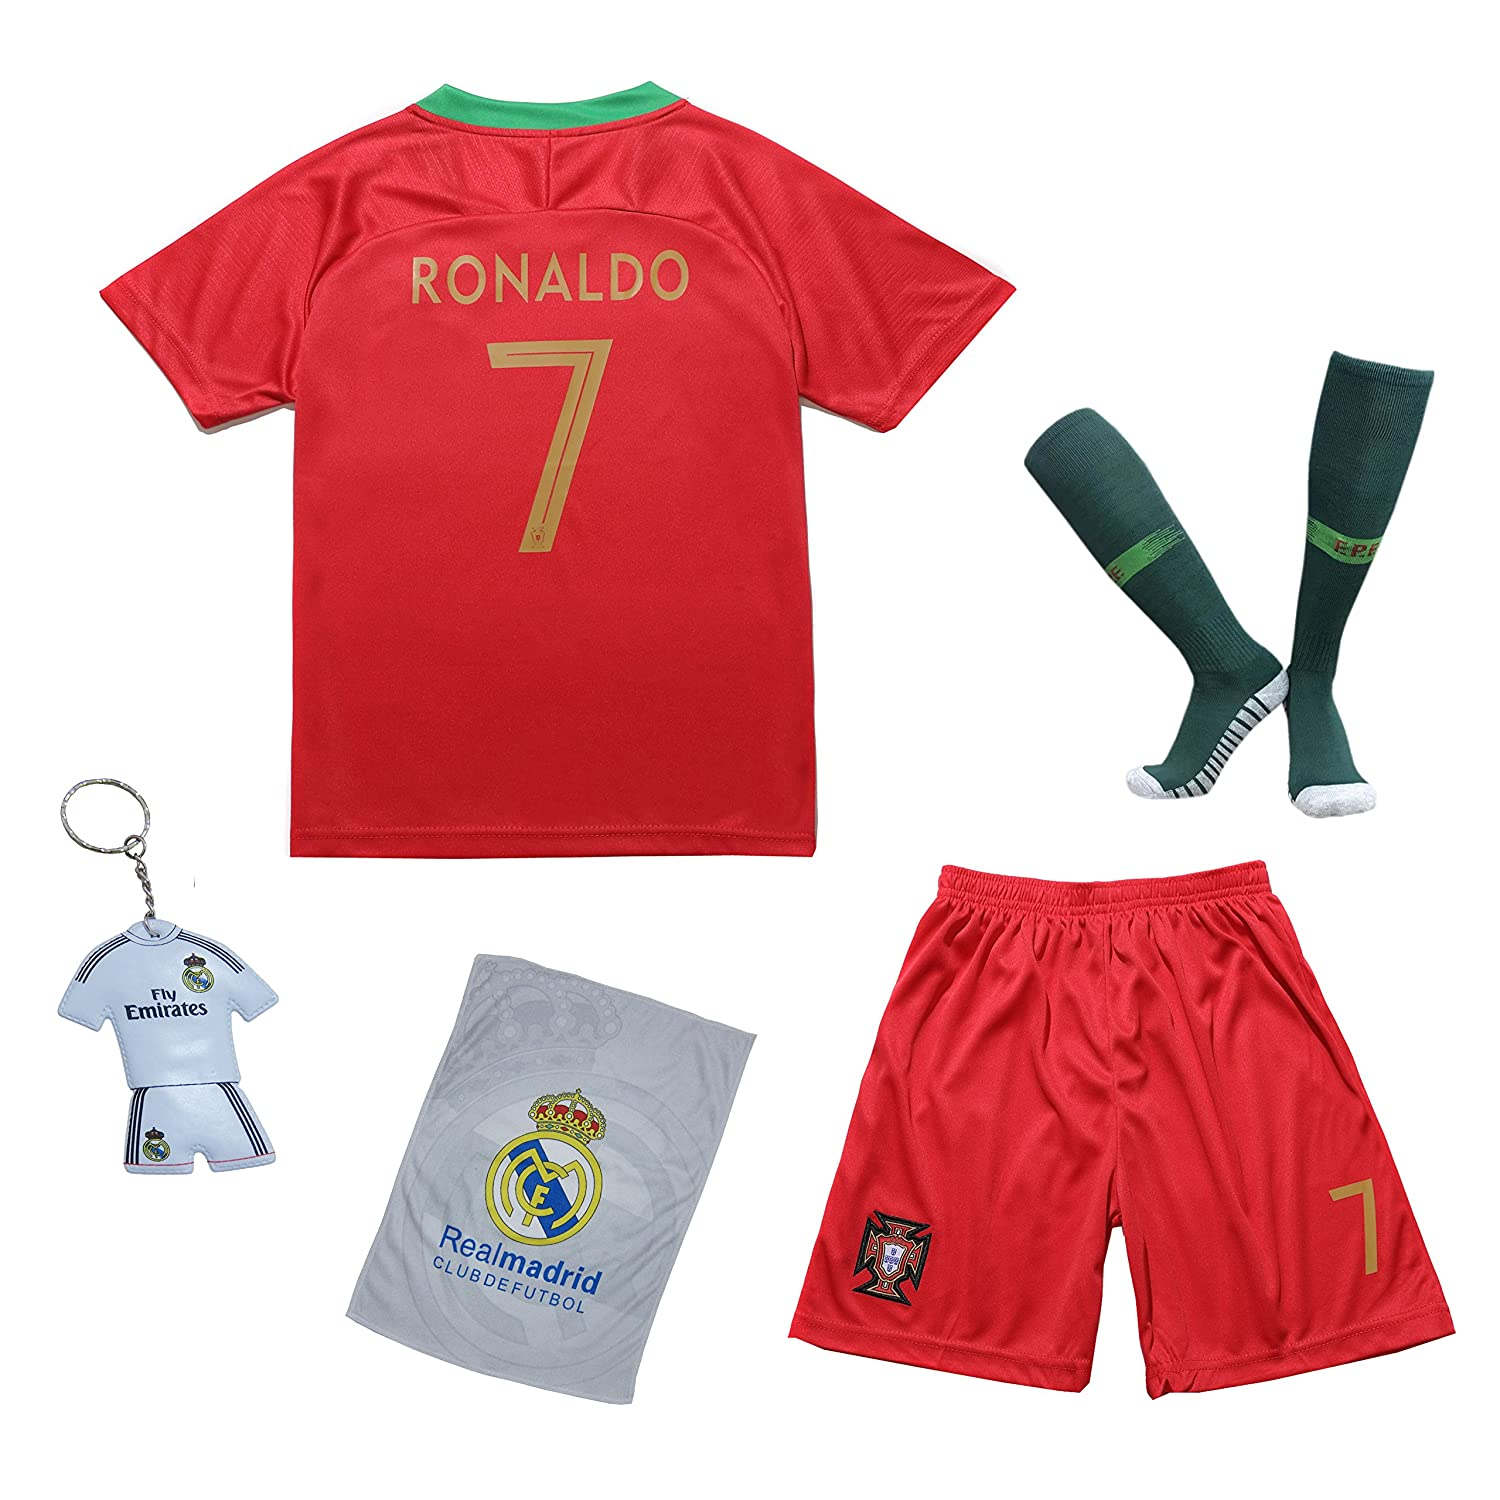 Kid Box 2018 Portugal Cristiano Ronaldo 7 Home Red Jersey Barcelona Couple Kids Soccer Football Gift Set Youth Sizes Sports Outdoors